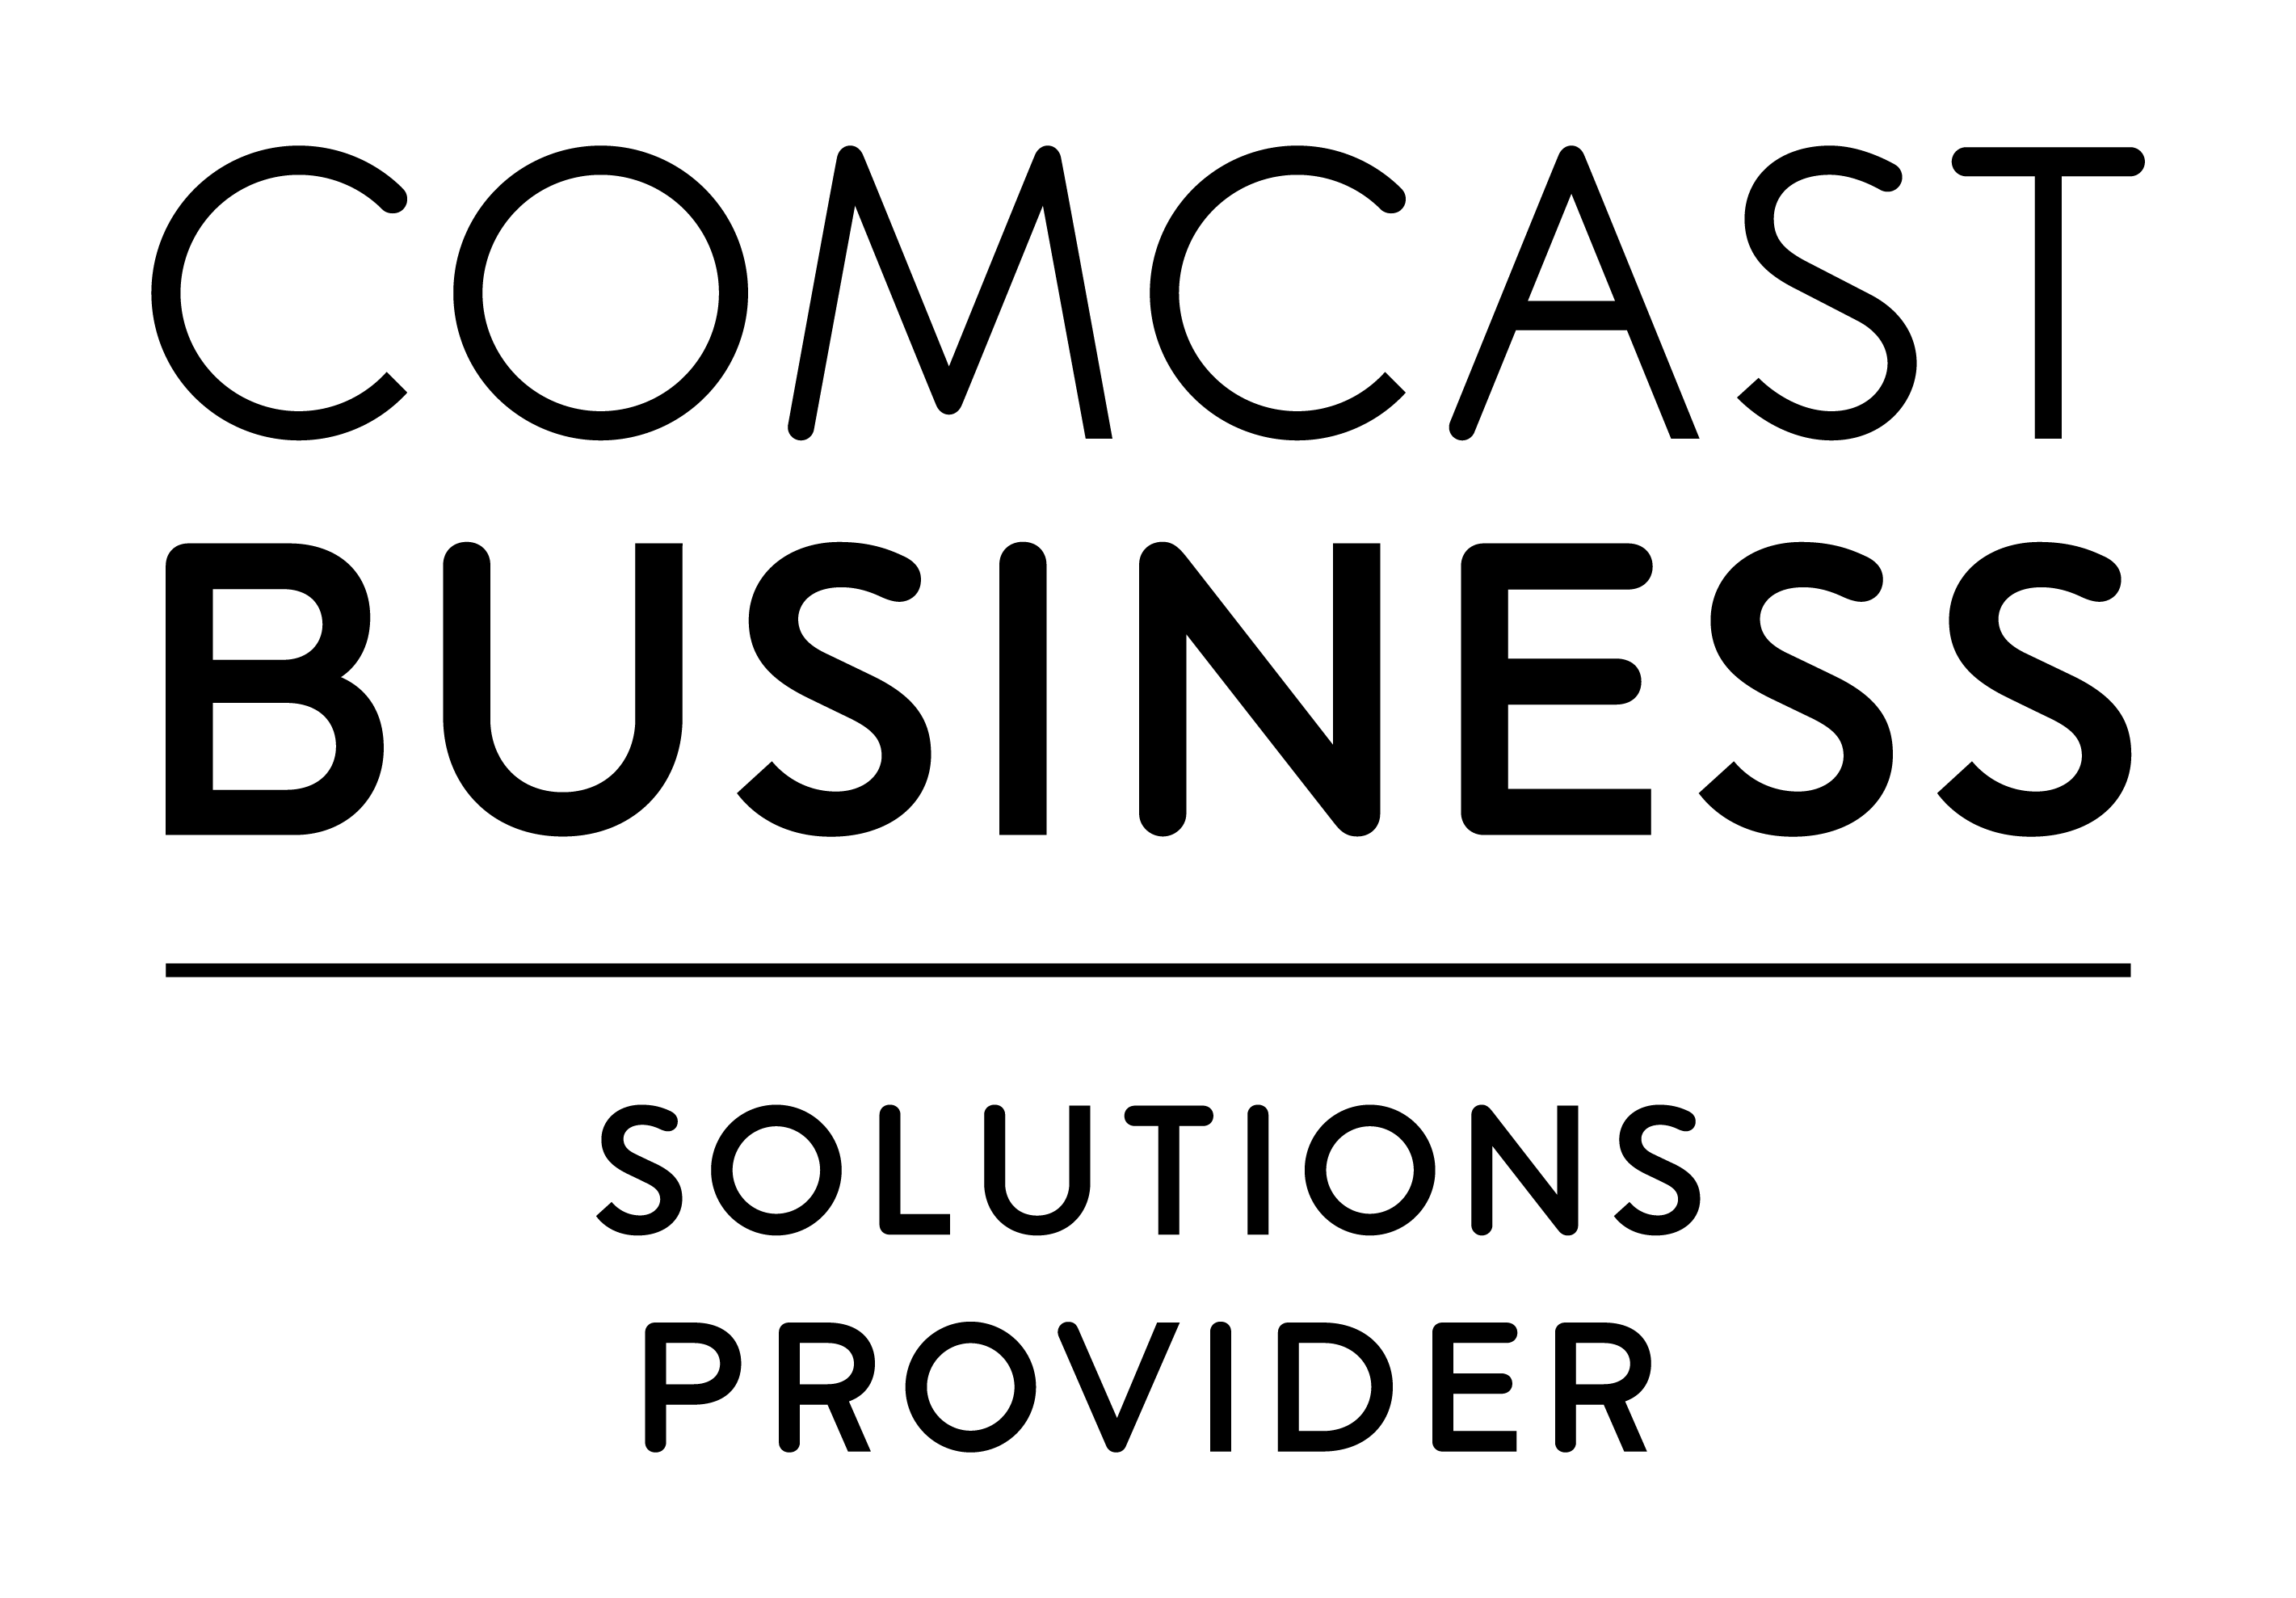 Comcast_Business_SP_k_2-01